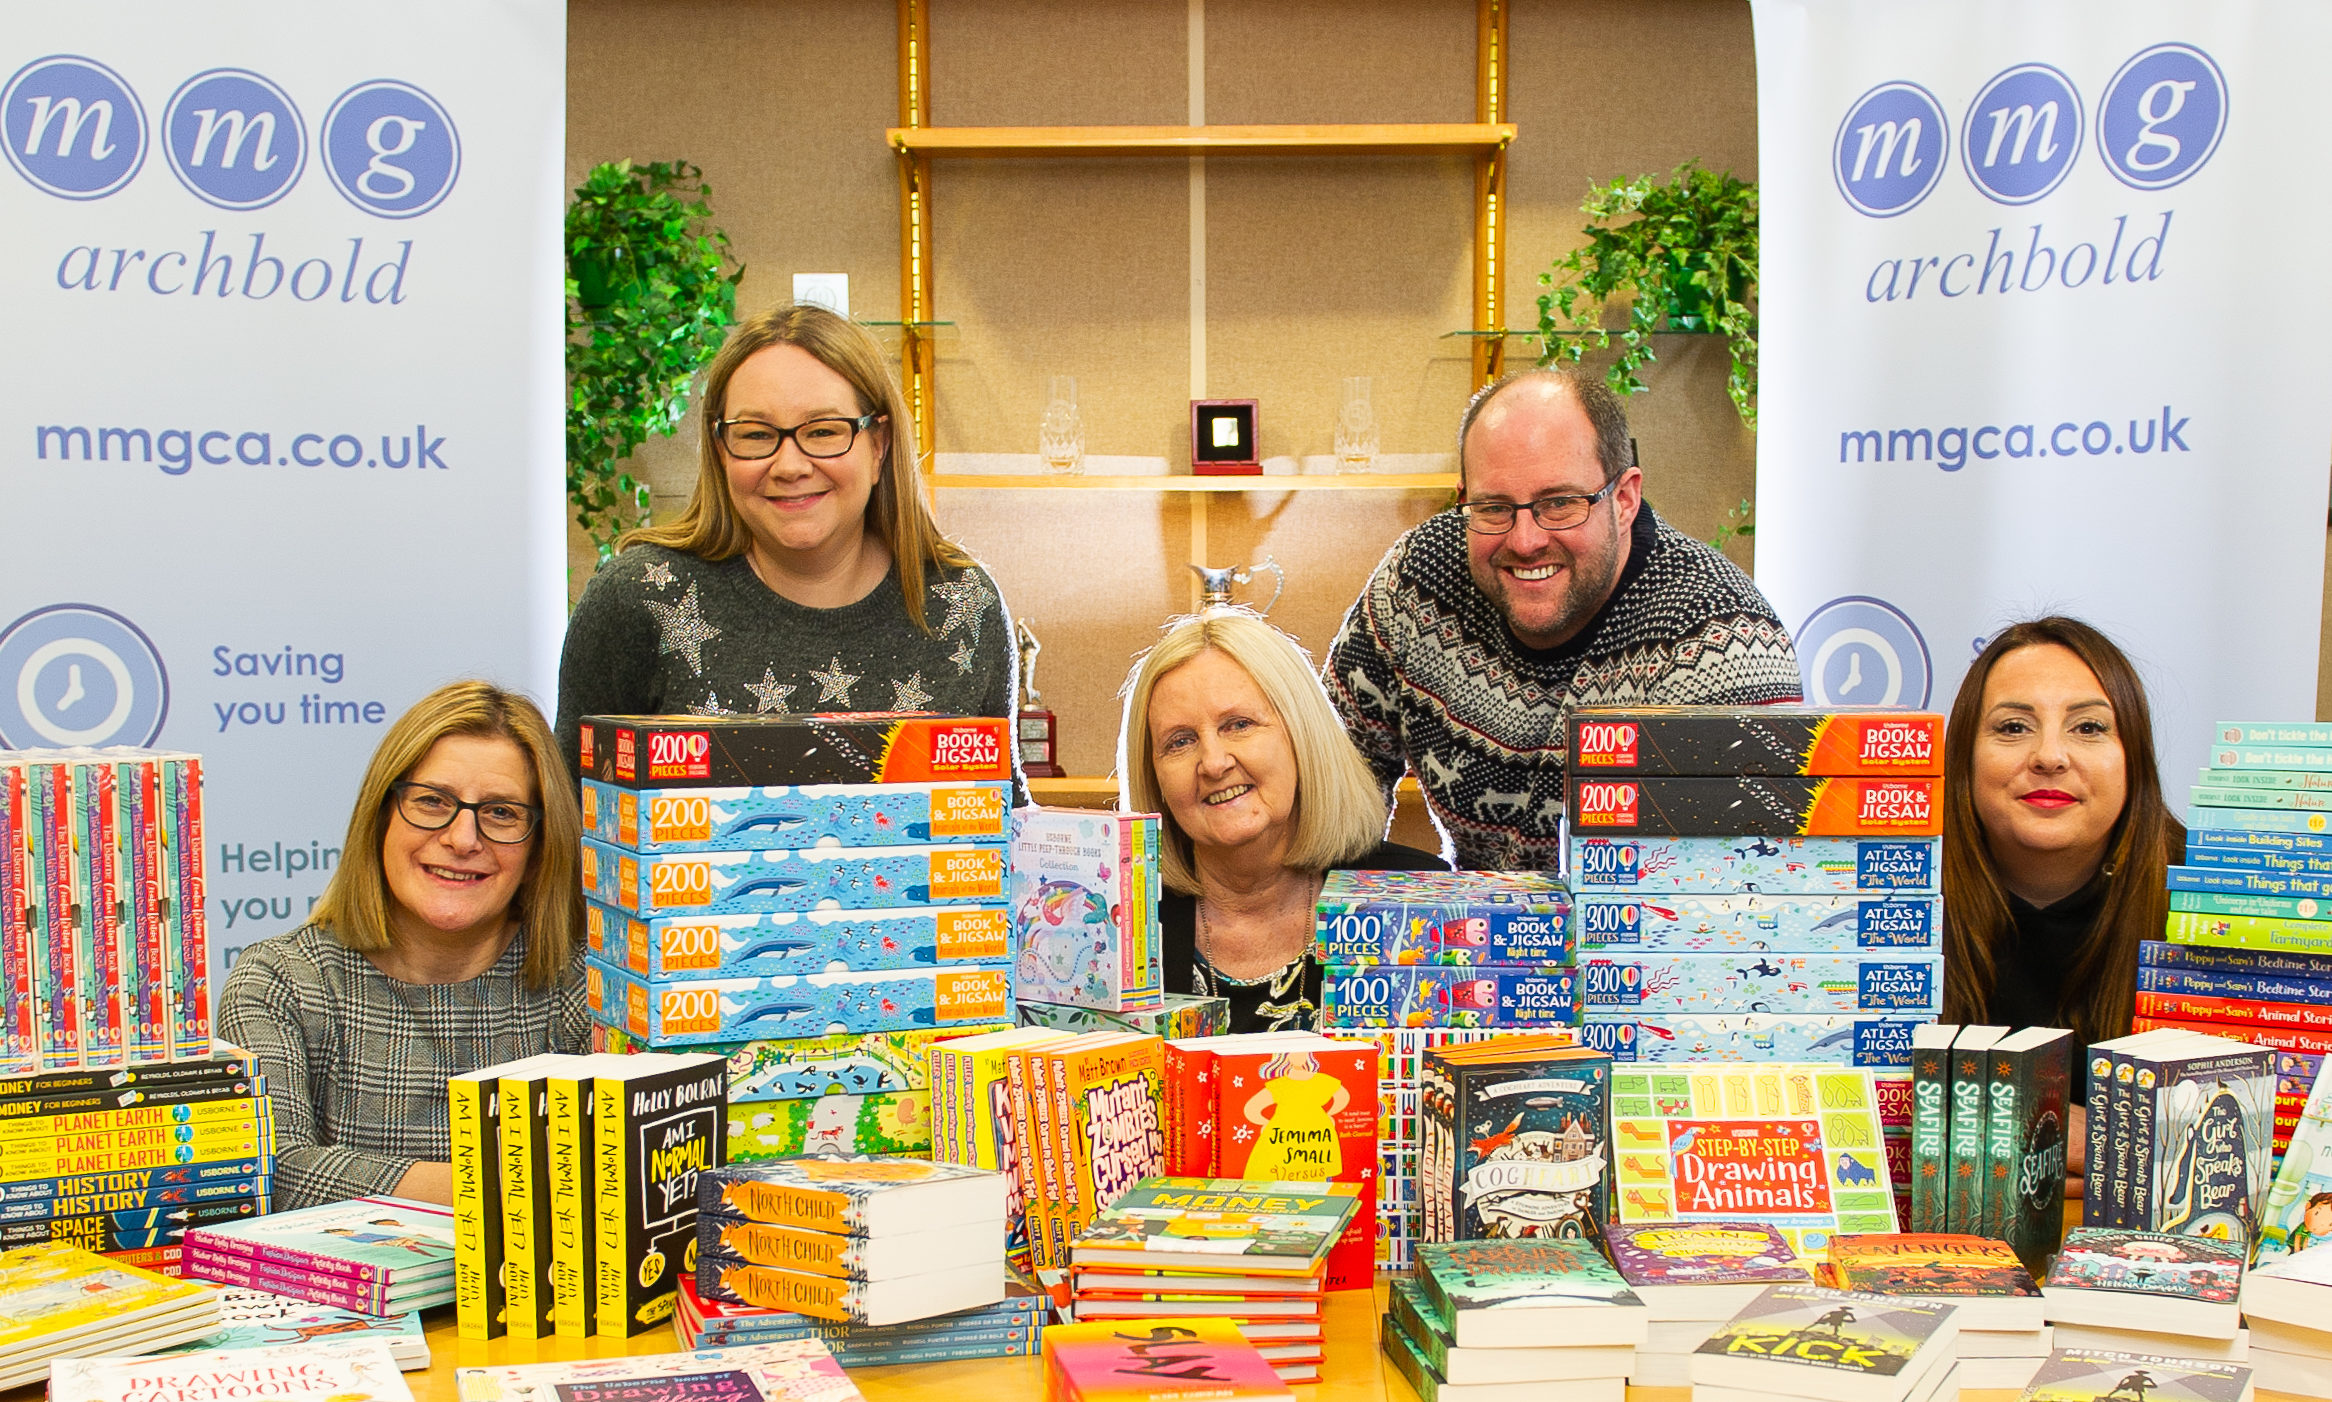 Telegraph News – Dundee – Sarah Williamson story - CR0017588 - Help for Kids have received over £1,500 worth books for children this Christmas. Picture being taken at MMG Archibald who donated money for Fiona to get the books. Picture Shows;  l to r - Wilma Anderson (MMG Archbold), Fiona Sivewright (Usborne Books), Aileen Bollan (MMG Archbold), Derek Millar (Trustee Help for Kids) and Hannah Kemlo (Help for Kids), MMG Archbold, Chapelshade House, Bell Street, Dundee, 16th December 2019 – Kim Cessford / DCT Media